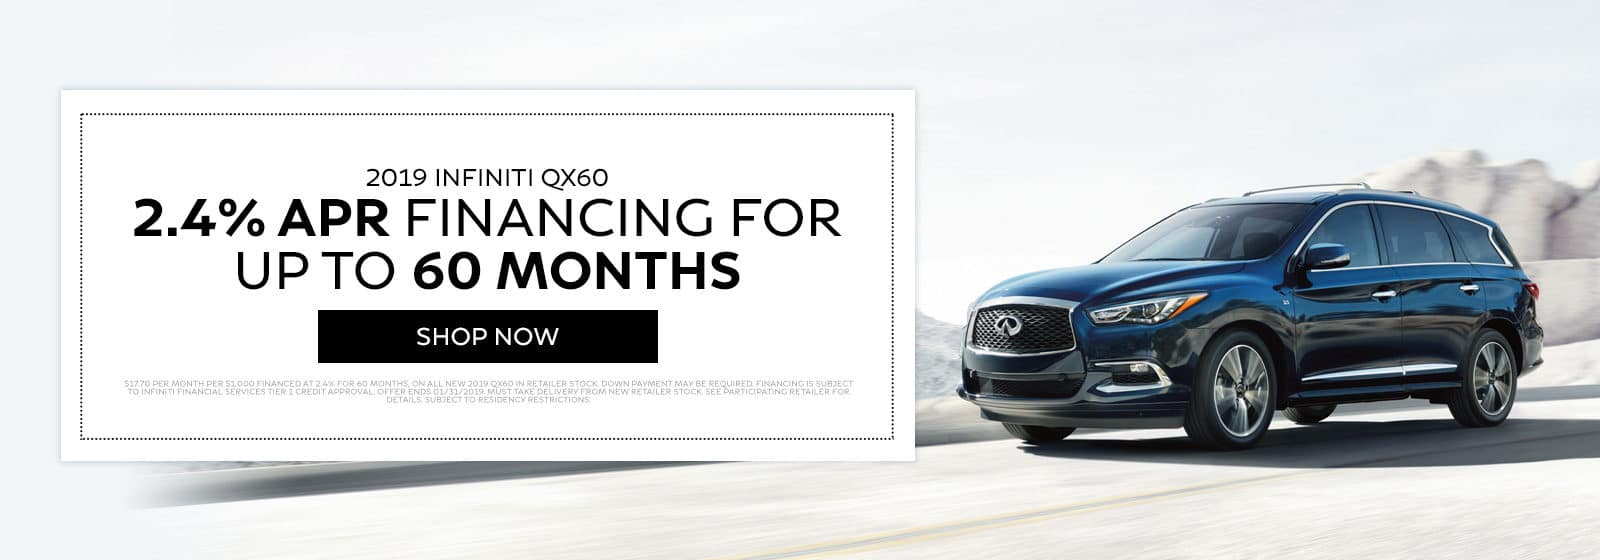 2019 INFINITI QX60 - 2.4% APR financing for up to 60 months - Shop Now